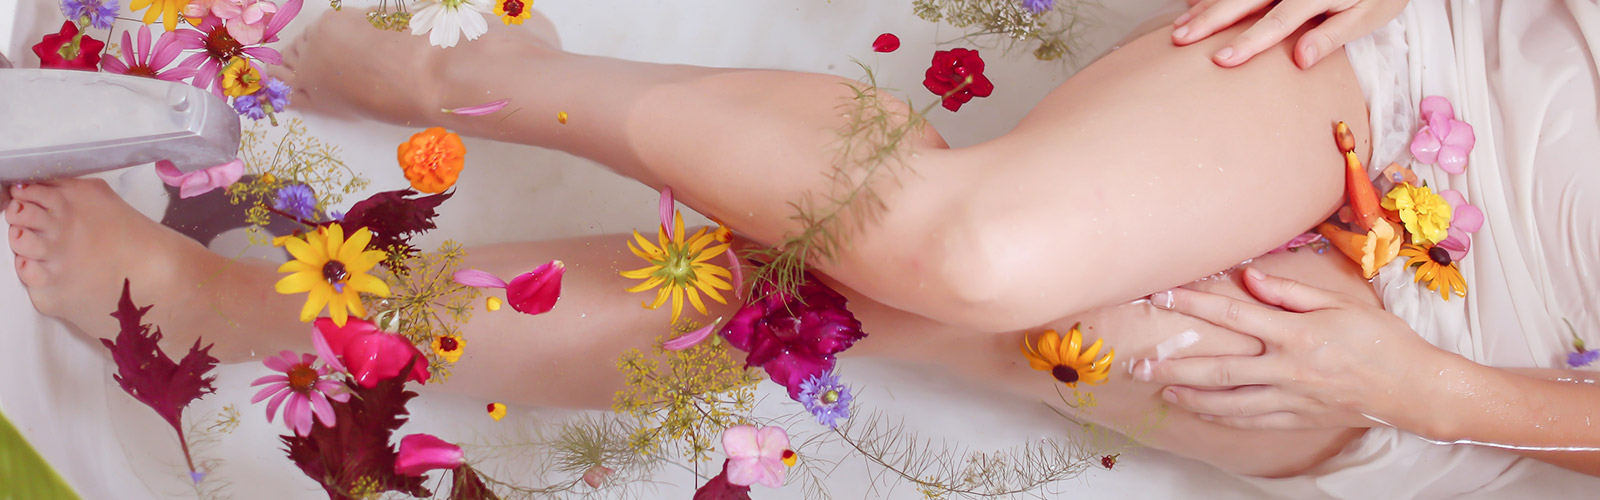 Woman in bath with flower petals